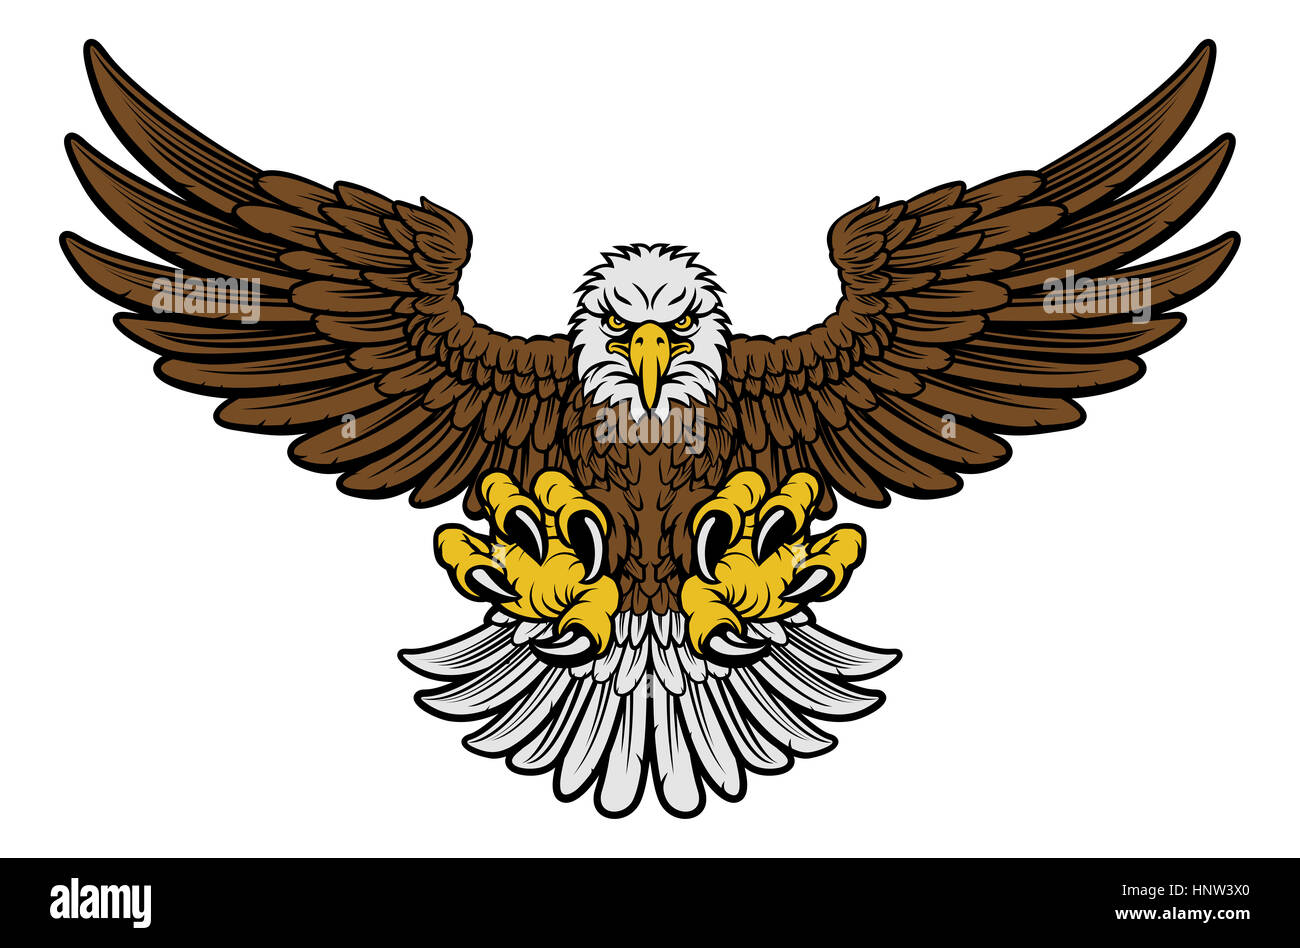 cartoon bald american eagle mascot swooping with claws out